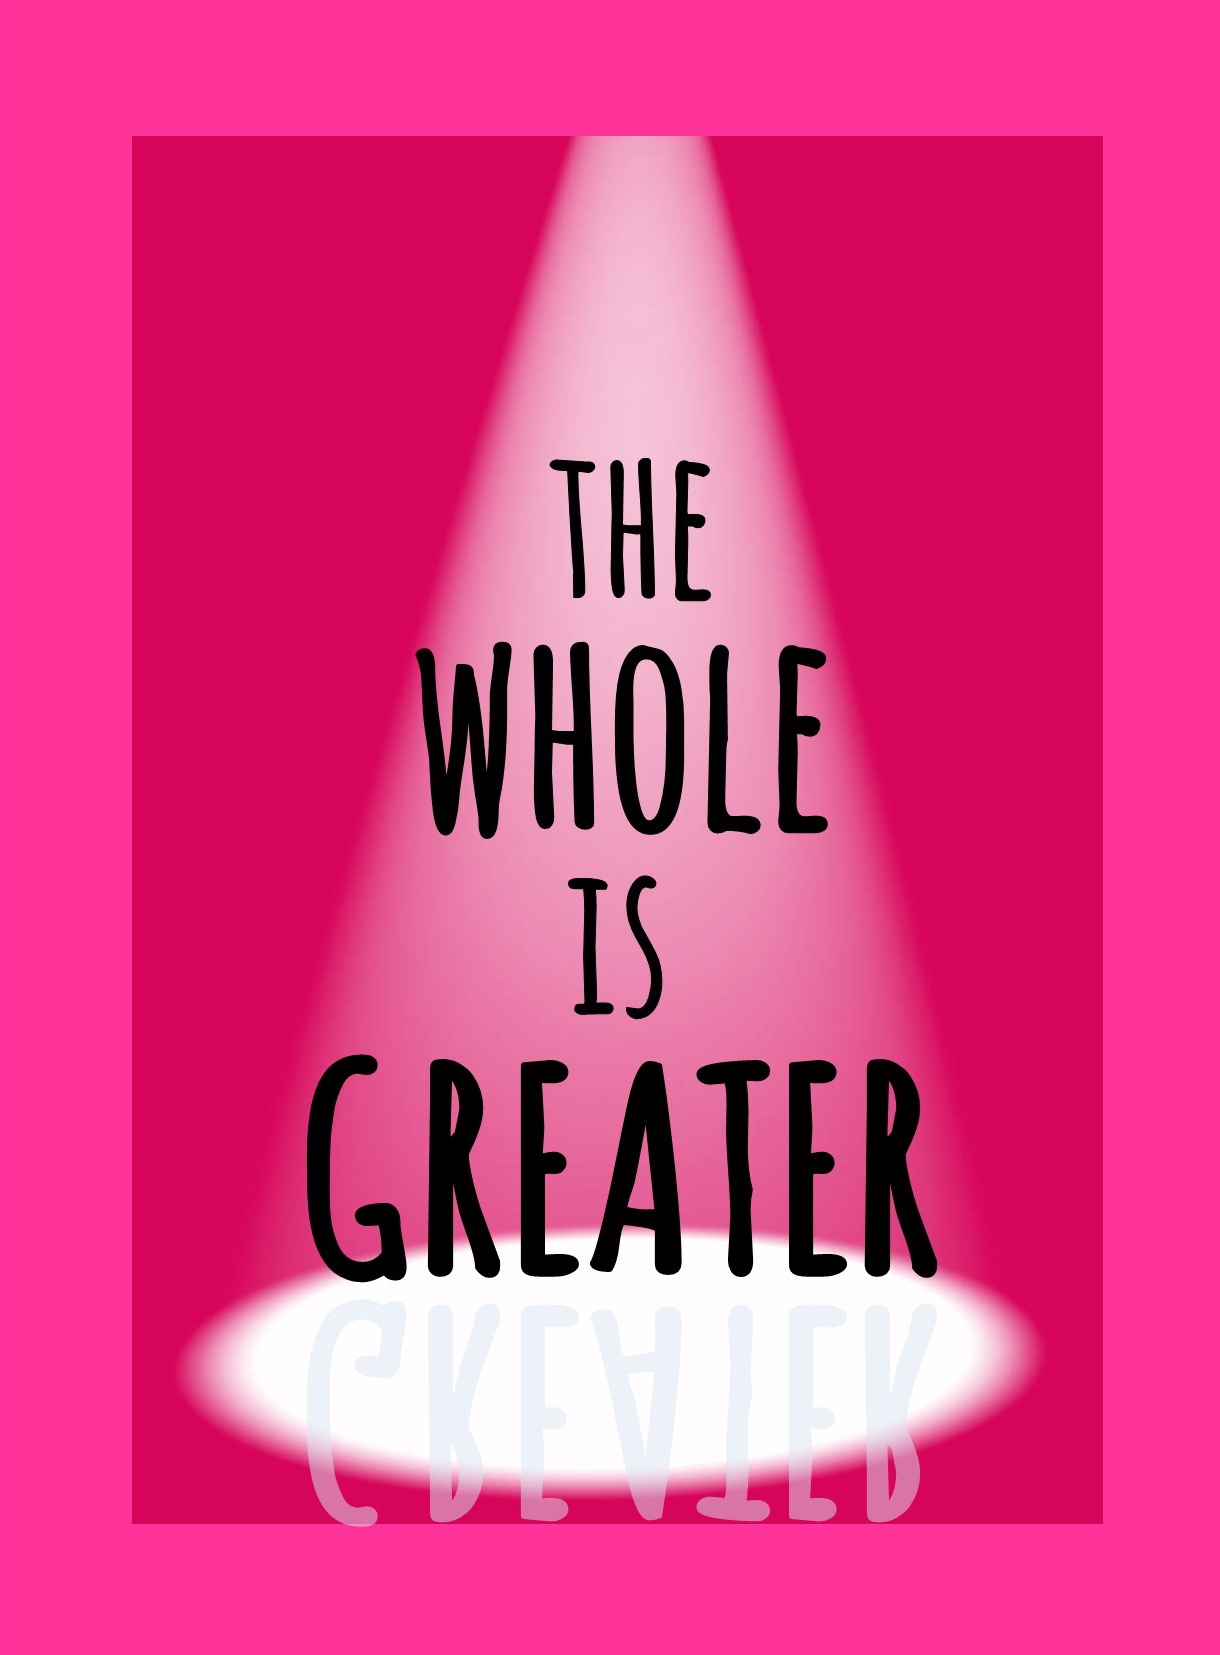 whole is greater pink spot - Version 2.jpg